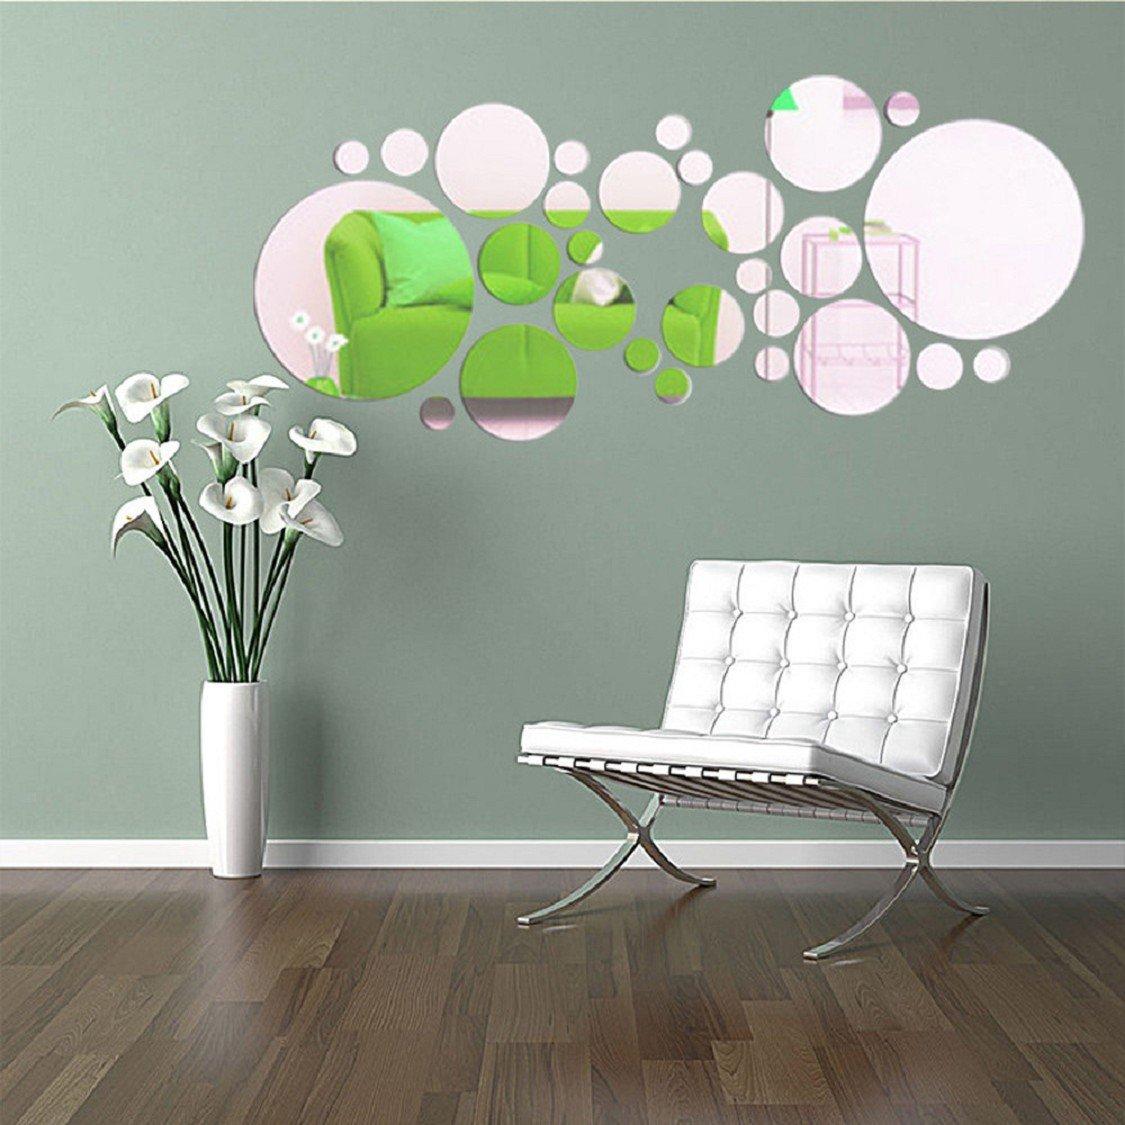 Ikevan 1 set 27 pcs acrylic art modern 3d mirror round wall ikevan 1 set 27 pcs acrylic art modern 3d mirror round wall stickers diy home wall room decals decor sofa tv setting wall removable wall stickers amipublicfo Images